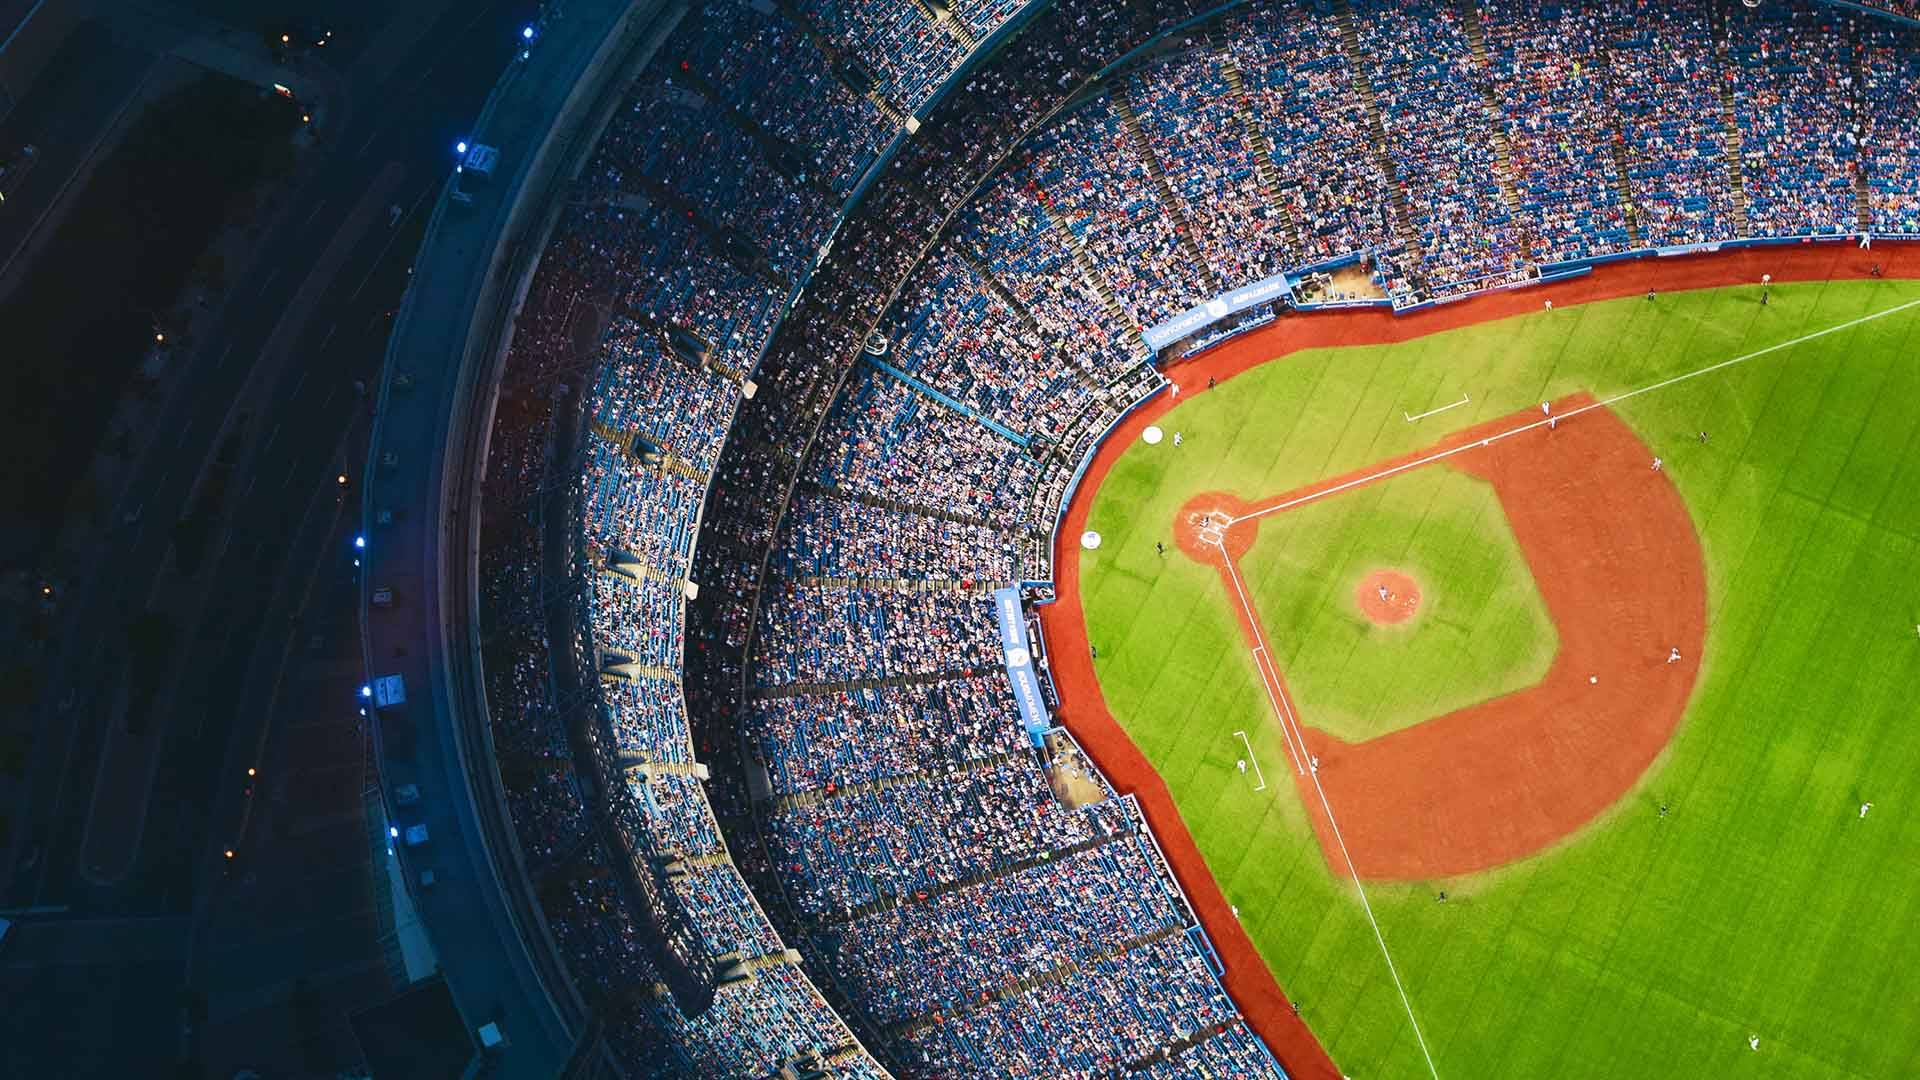 Aerial shot of a full baseball stadium